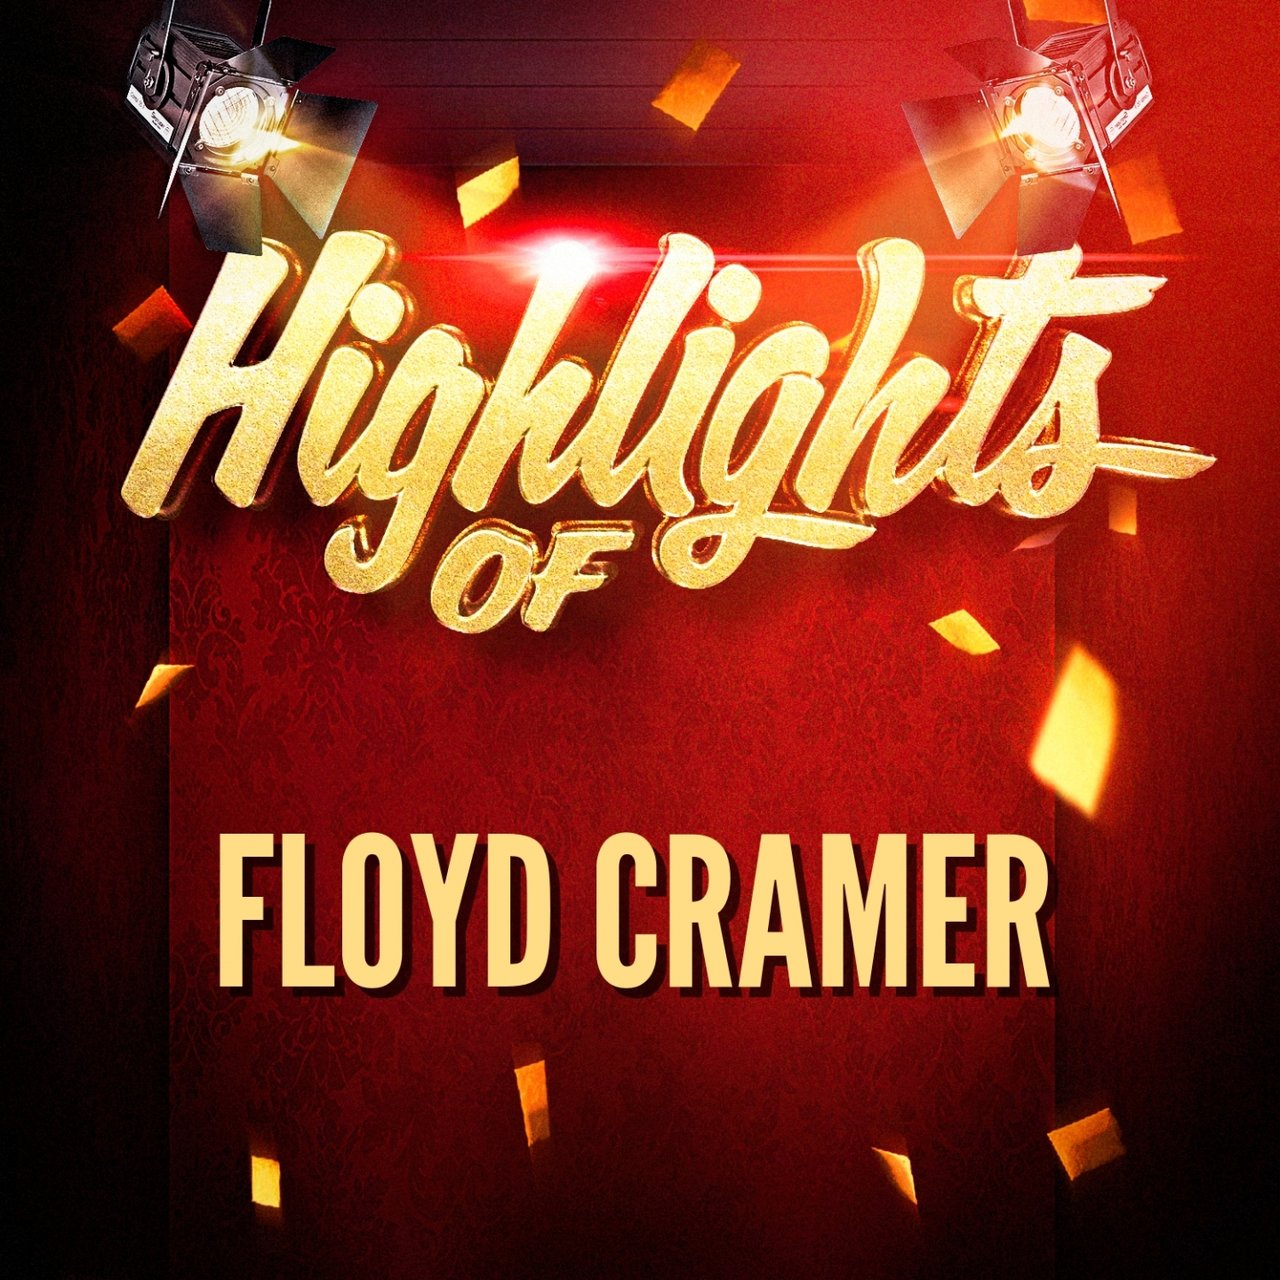 Highlights of Floyd Cramer